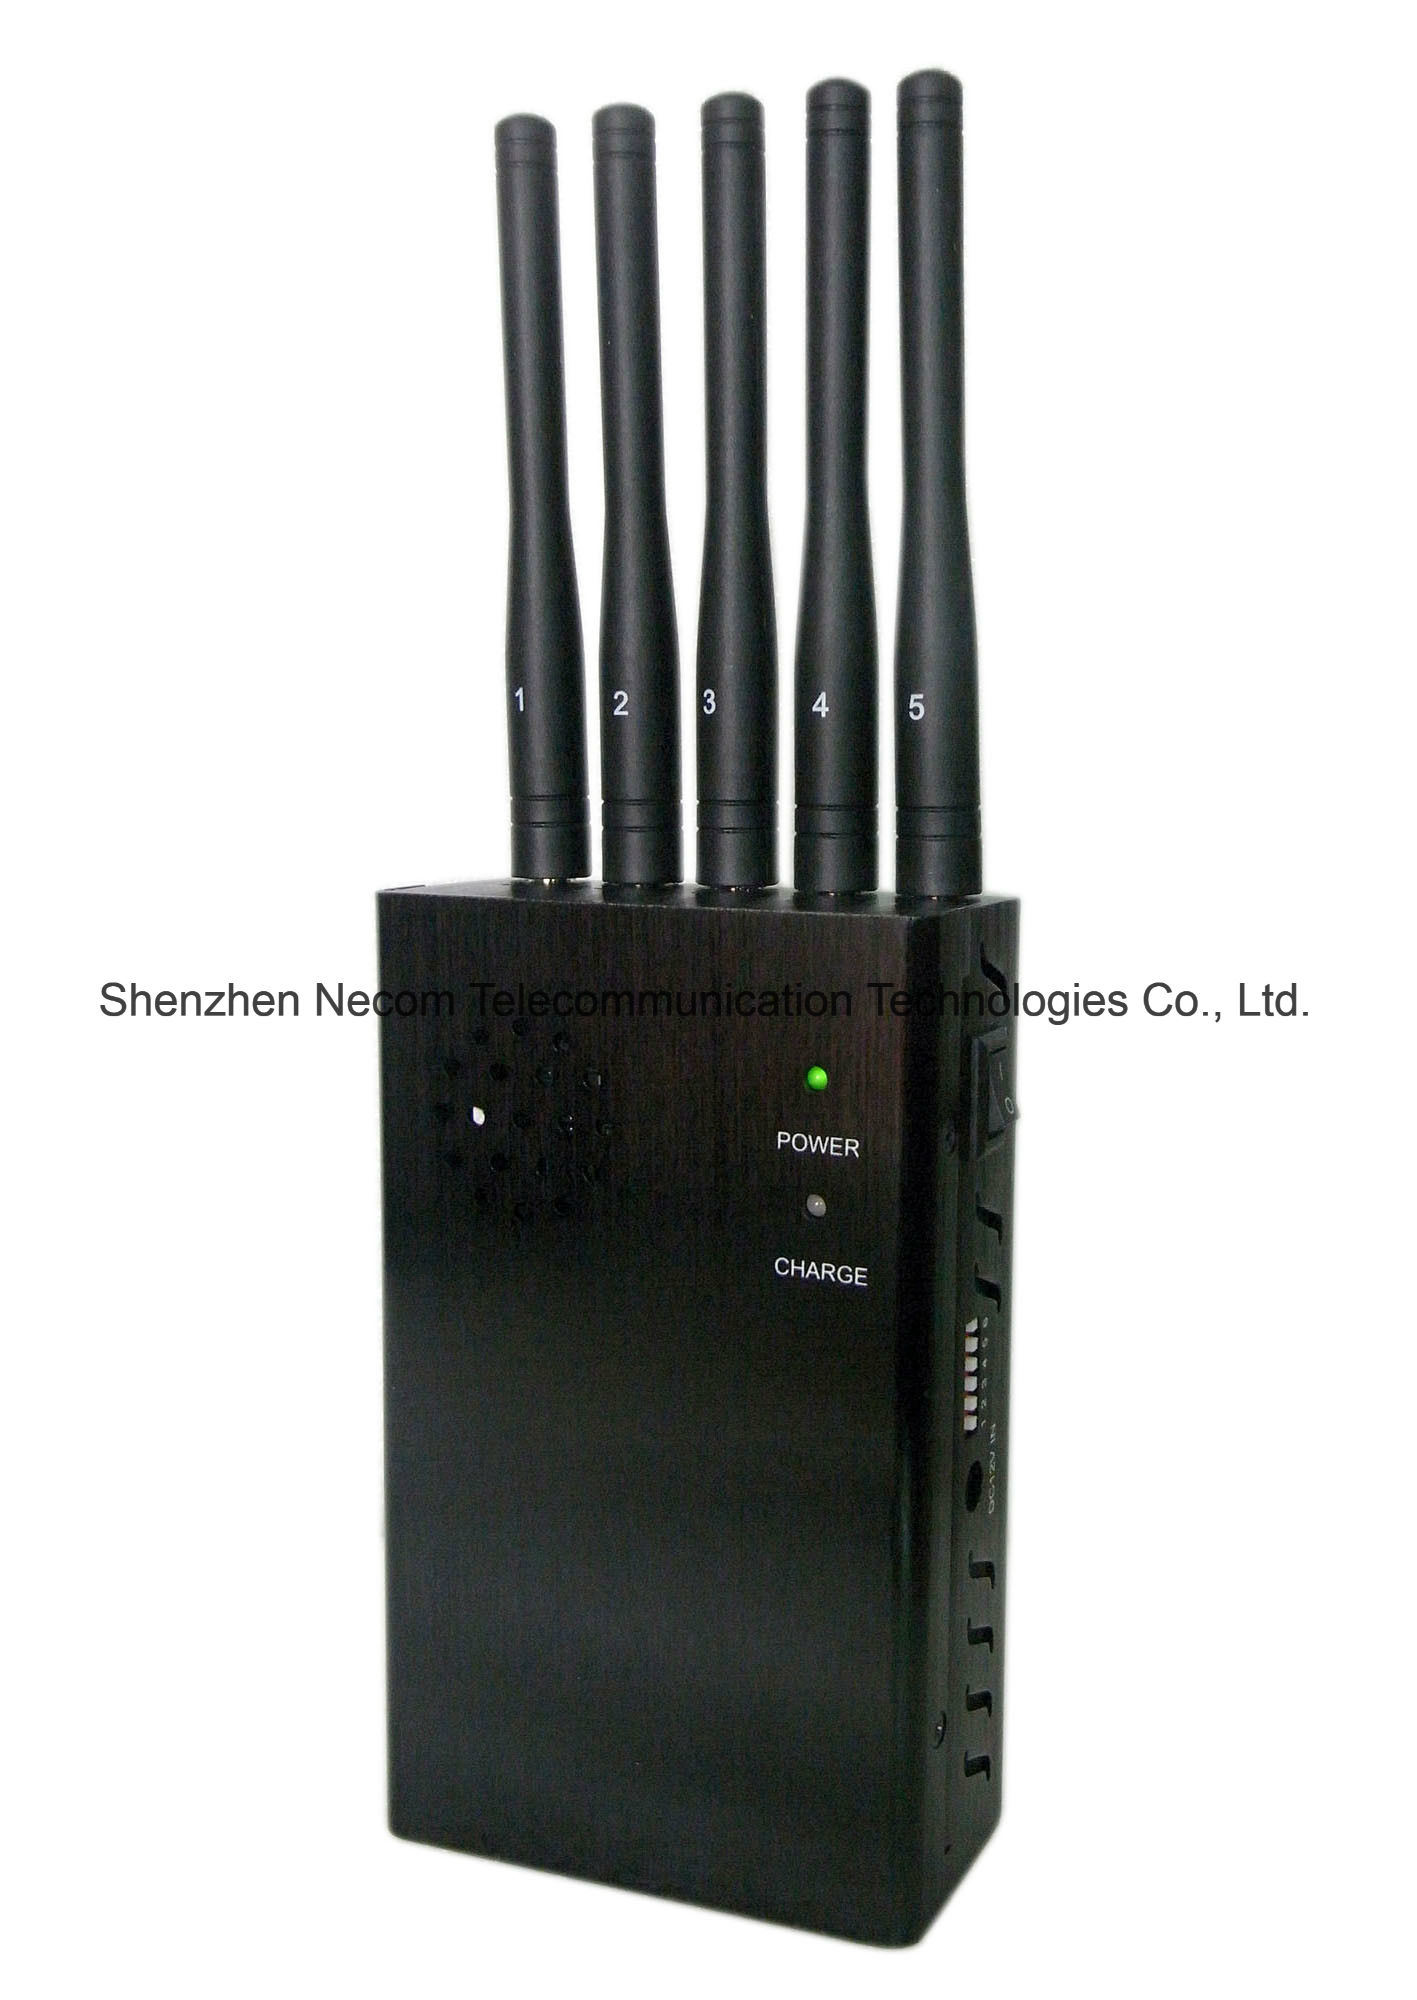 phone jammer android root - China 5 Antenna Big Portable Cell Jammer, Portable GPS Jammer, Portable WiFi Jammer, Jamming 2g+3G+4G+Gpsl1 - China 5 Band Signal Blockers, Five Antennas Jammers